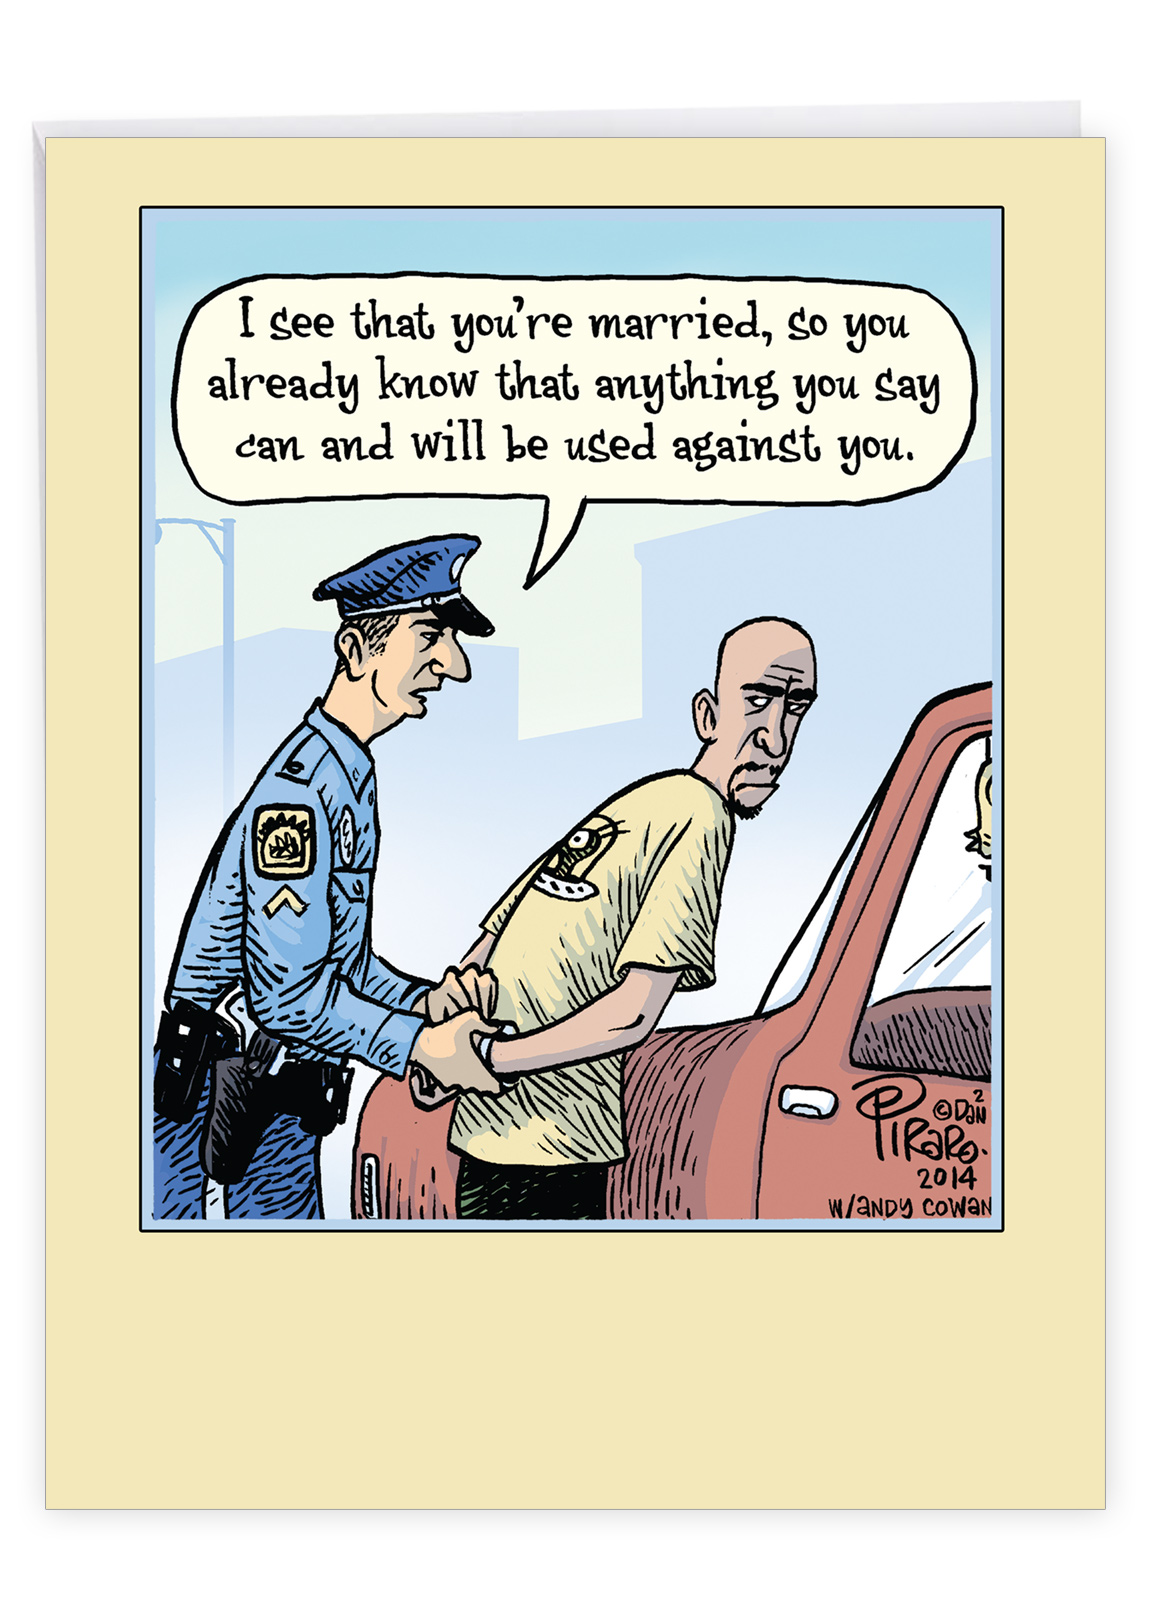 J9774 Jumbo Funny Anniversary Card Married Arrest With